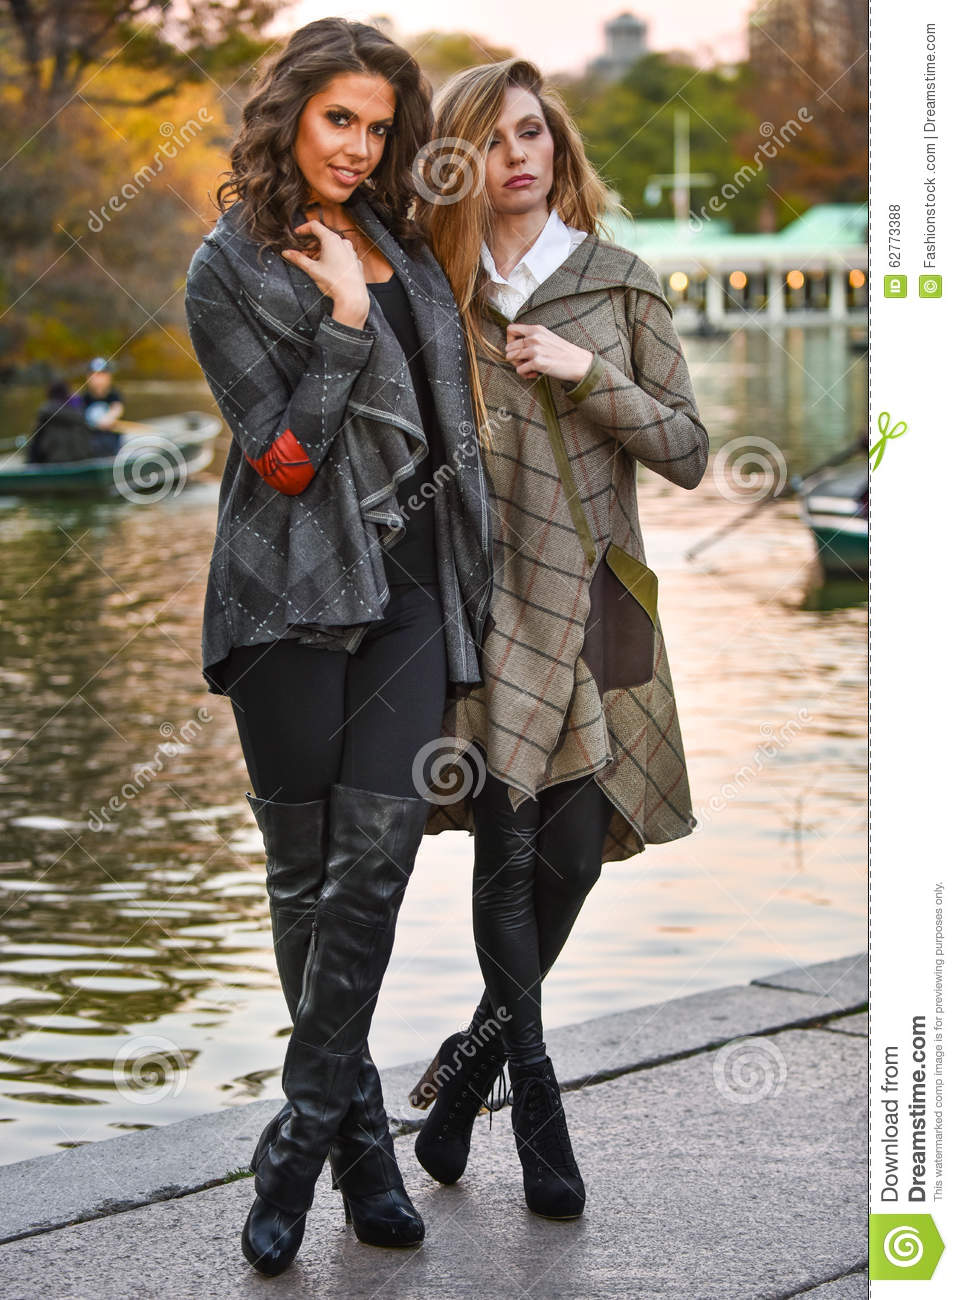 Two Pretty Girls In Elegant Coats Posing In Autumn Park. Stock